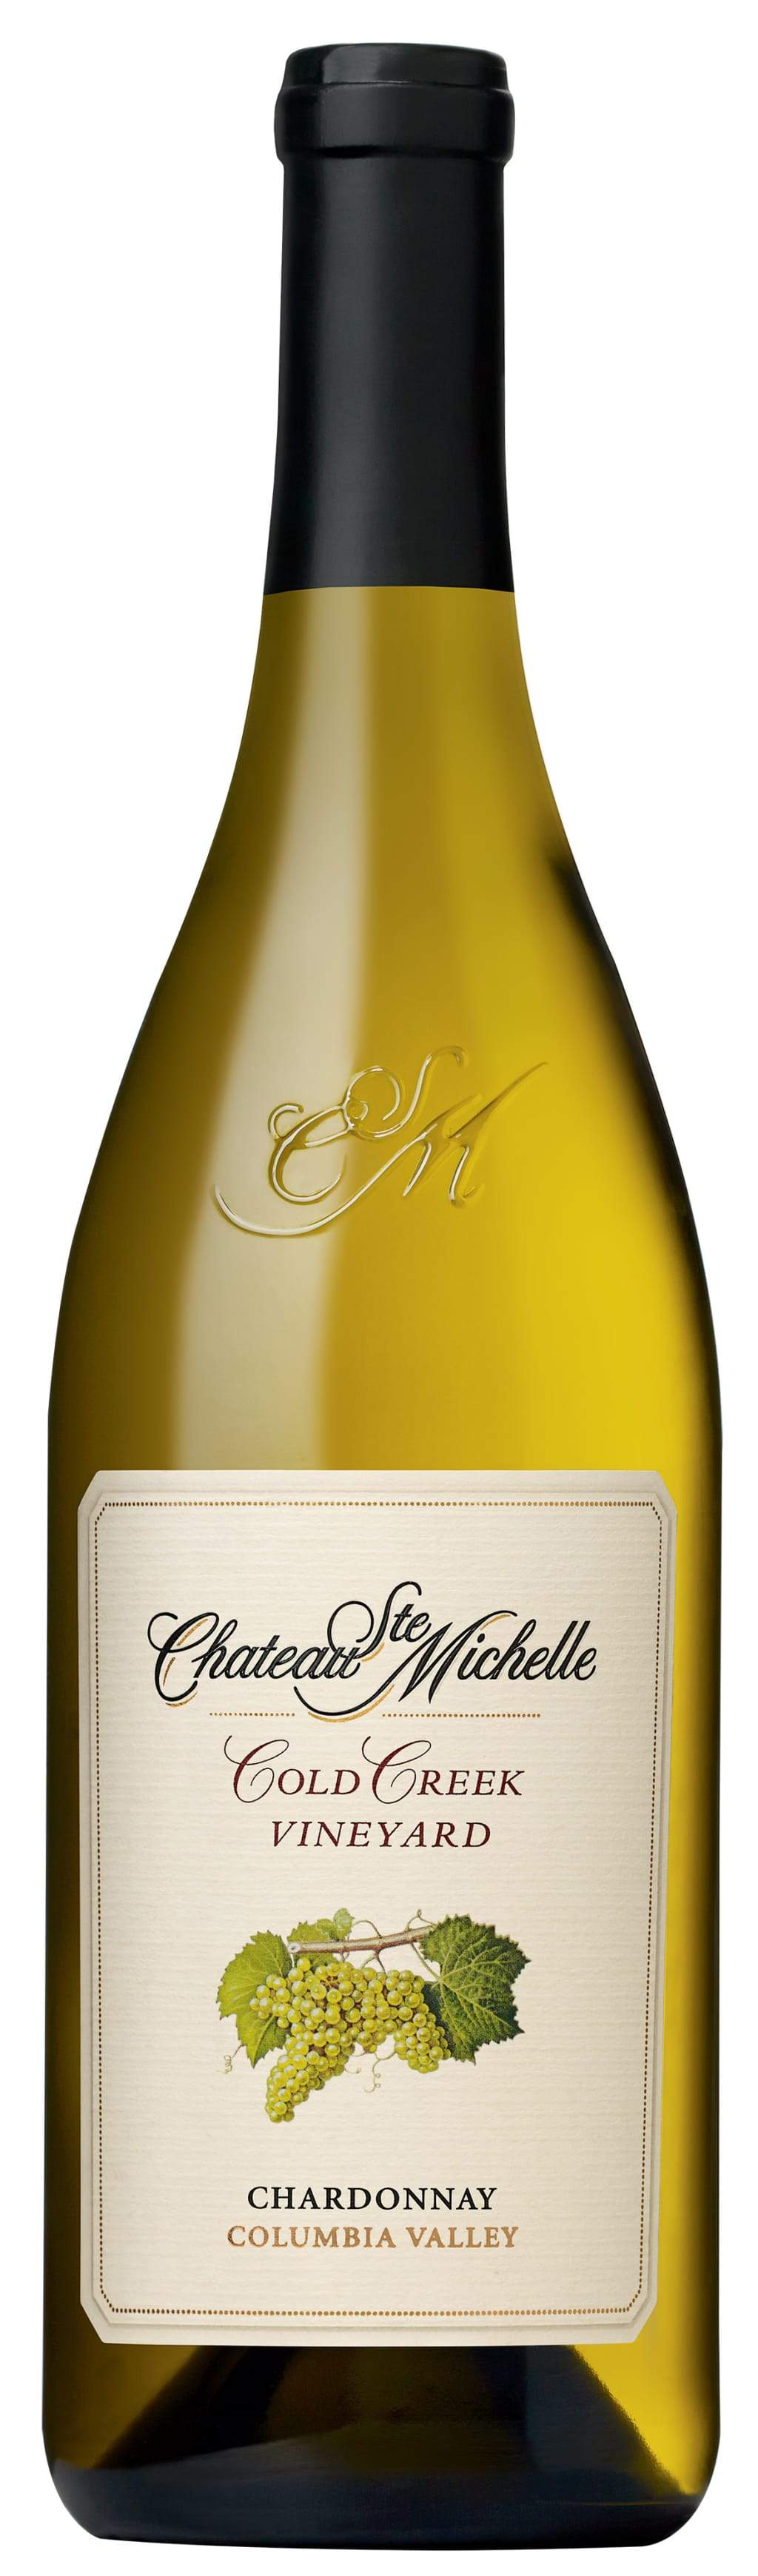 Chateau Ste. Michelle Chardonnay Cold Creek Vineyard 2016